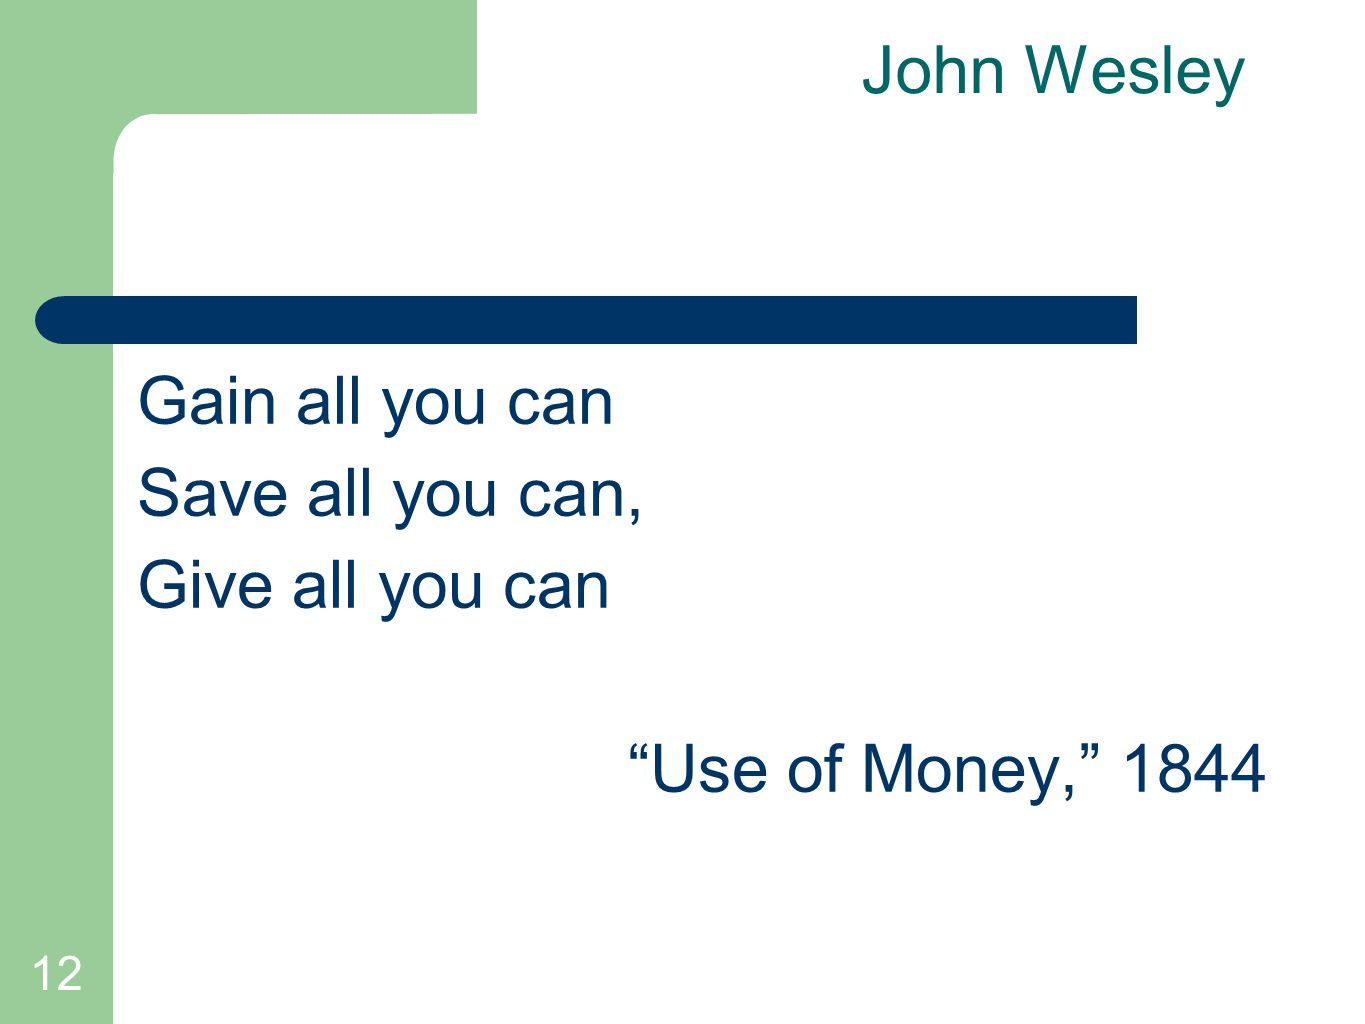 12 John Wesley Gain all you can Save all you can, Give all you can Use of Money, 1844